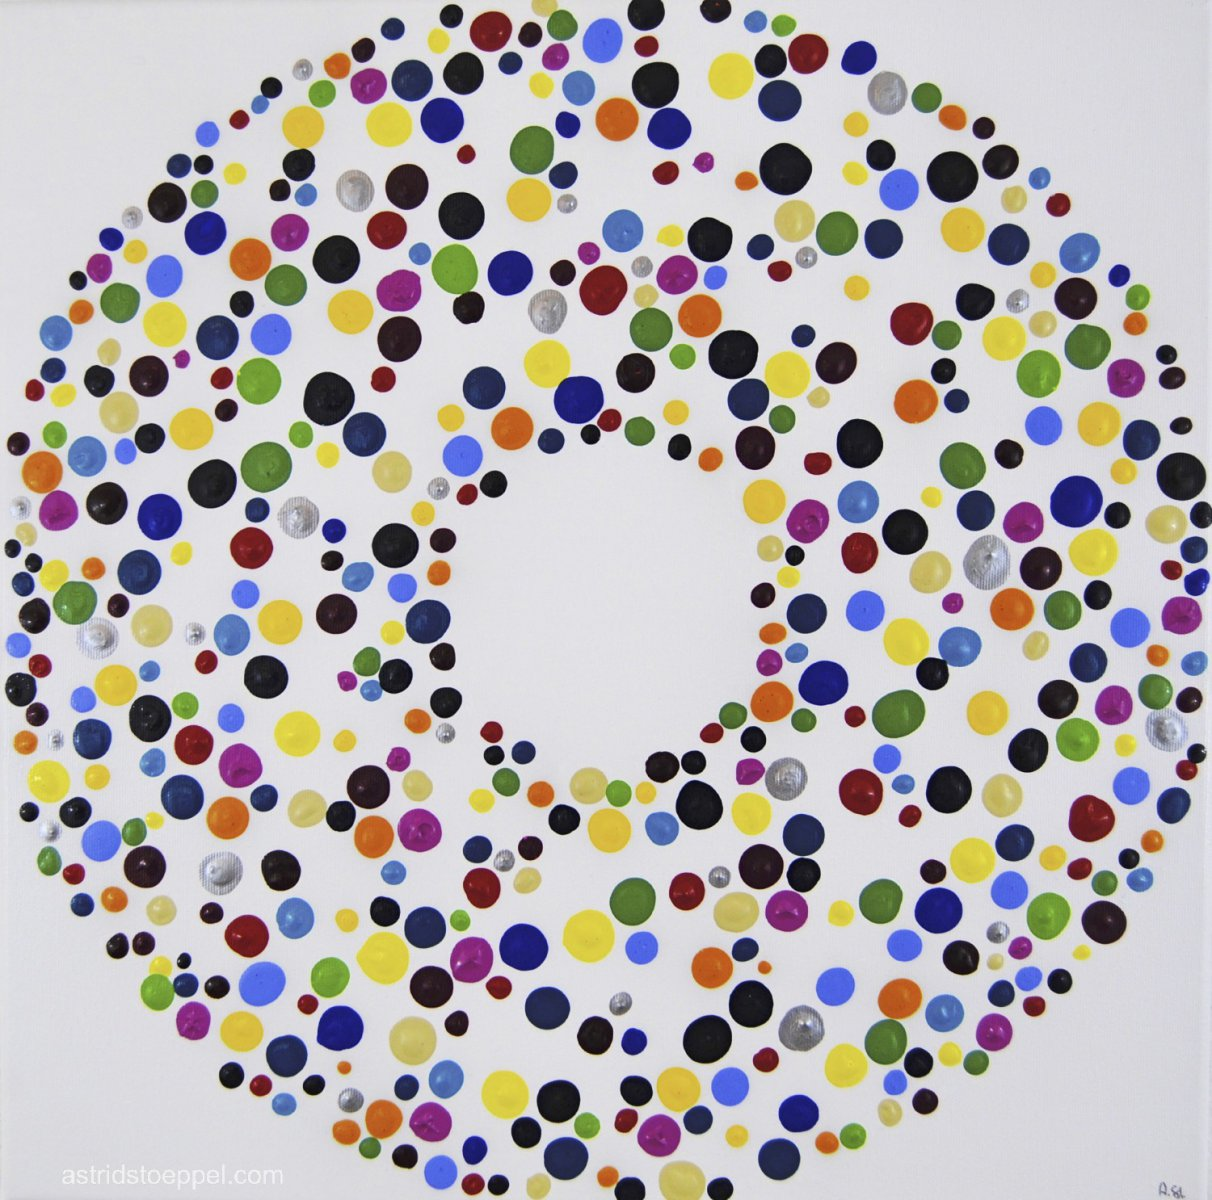 Dotted circle! - Astrid Stöppel